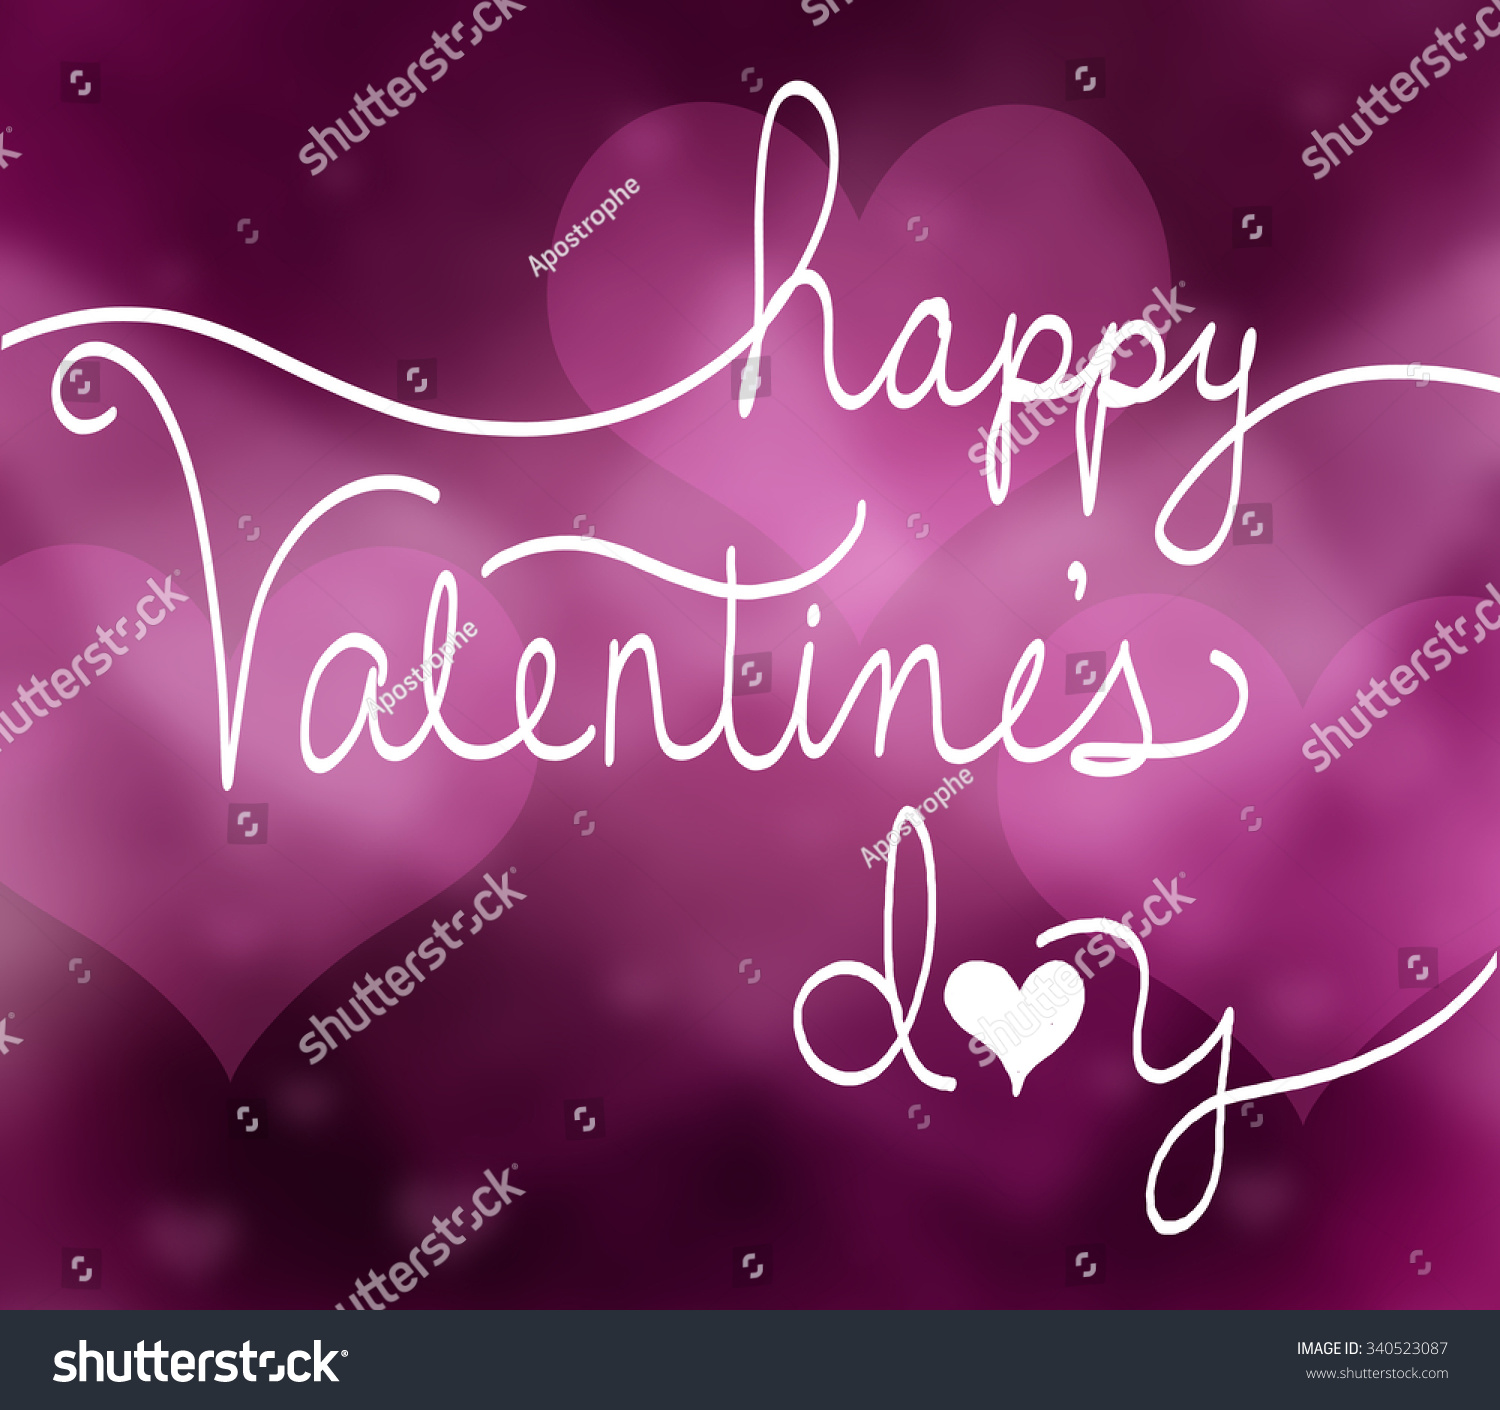 Happy Valentines Day Background Pink Hearts Stock Illustration